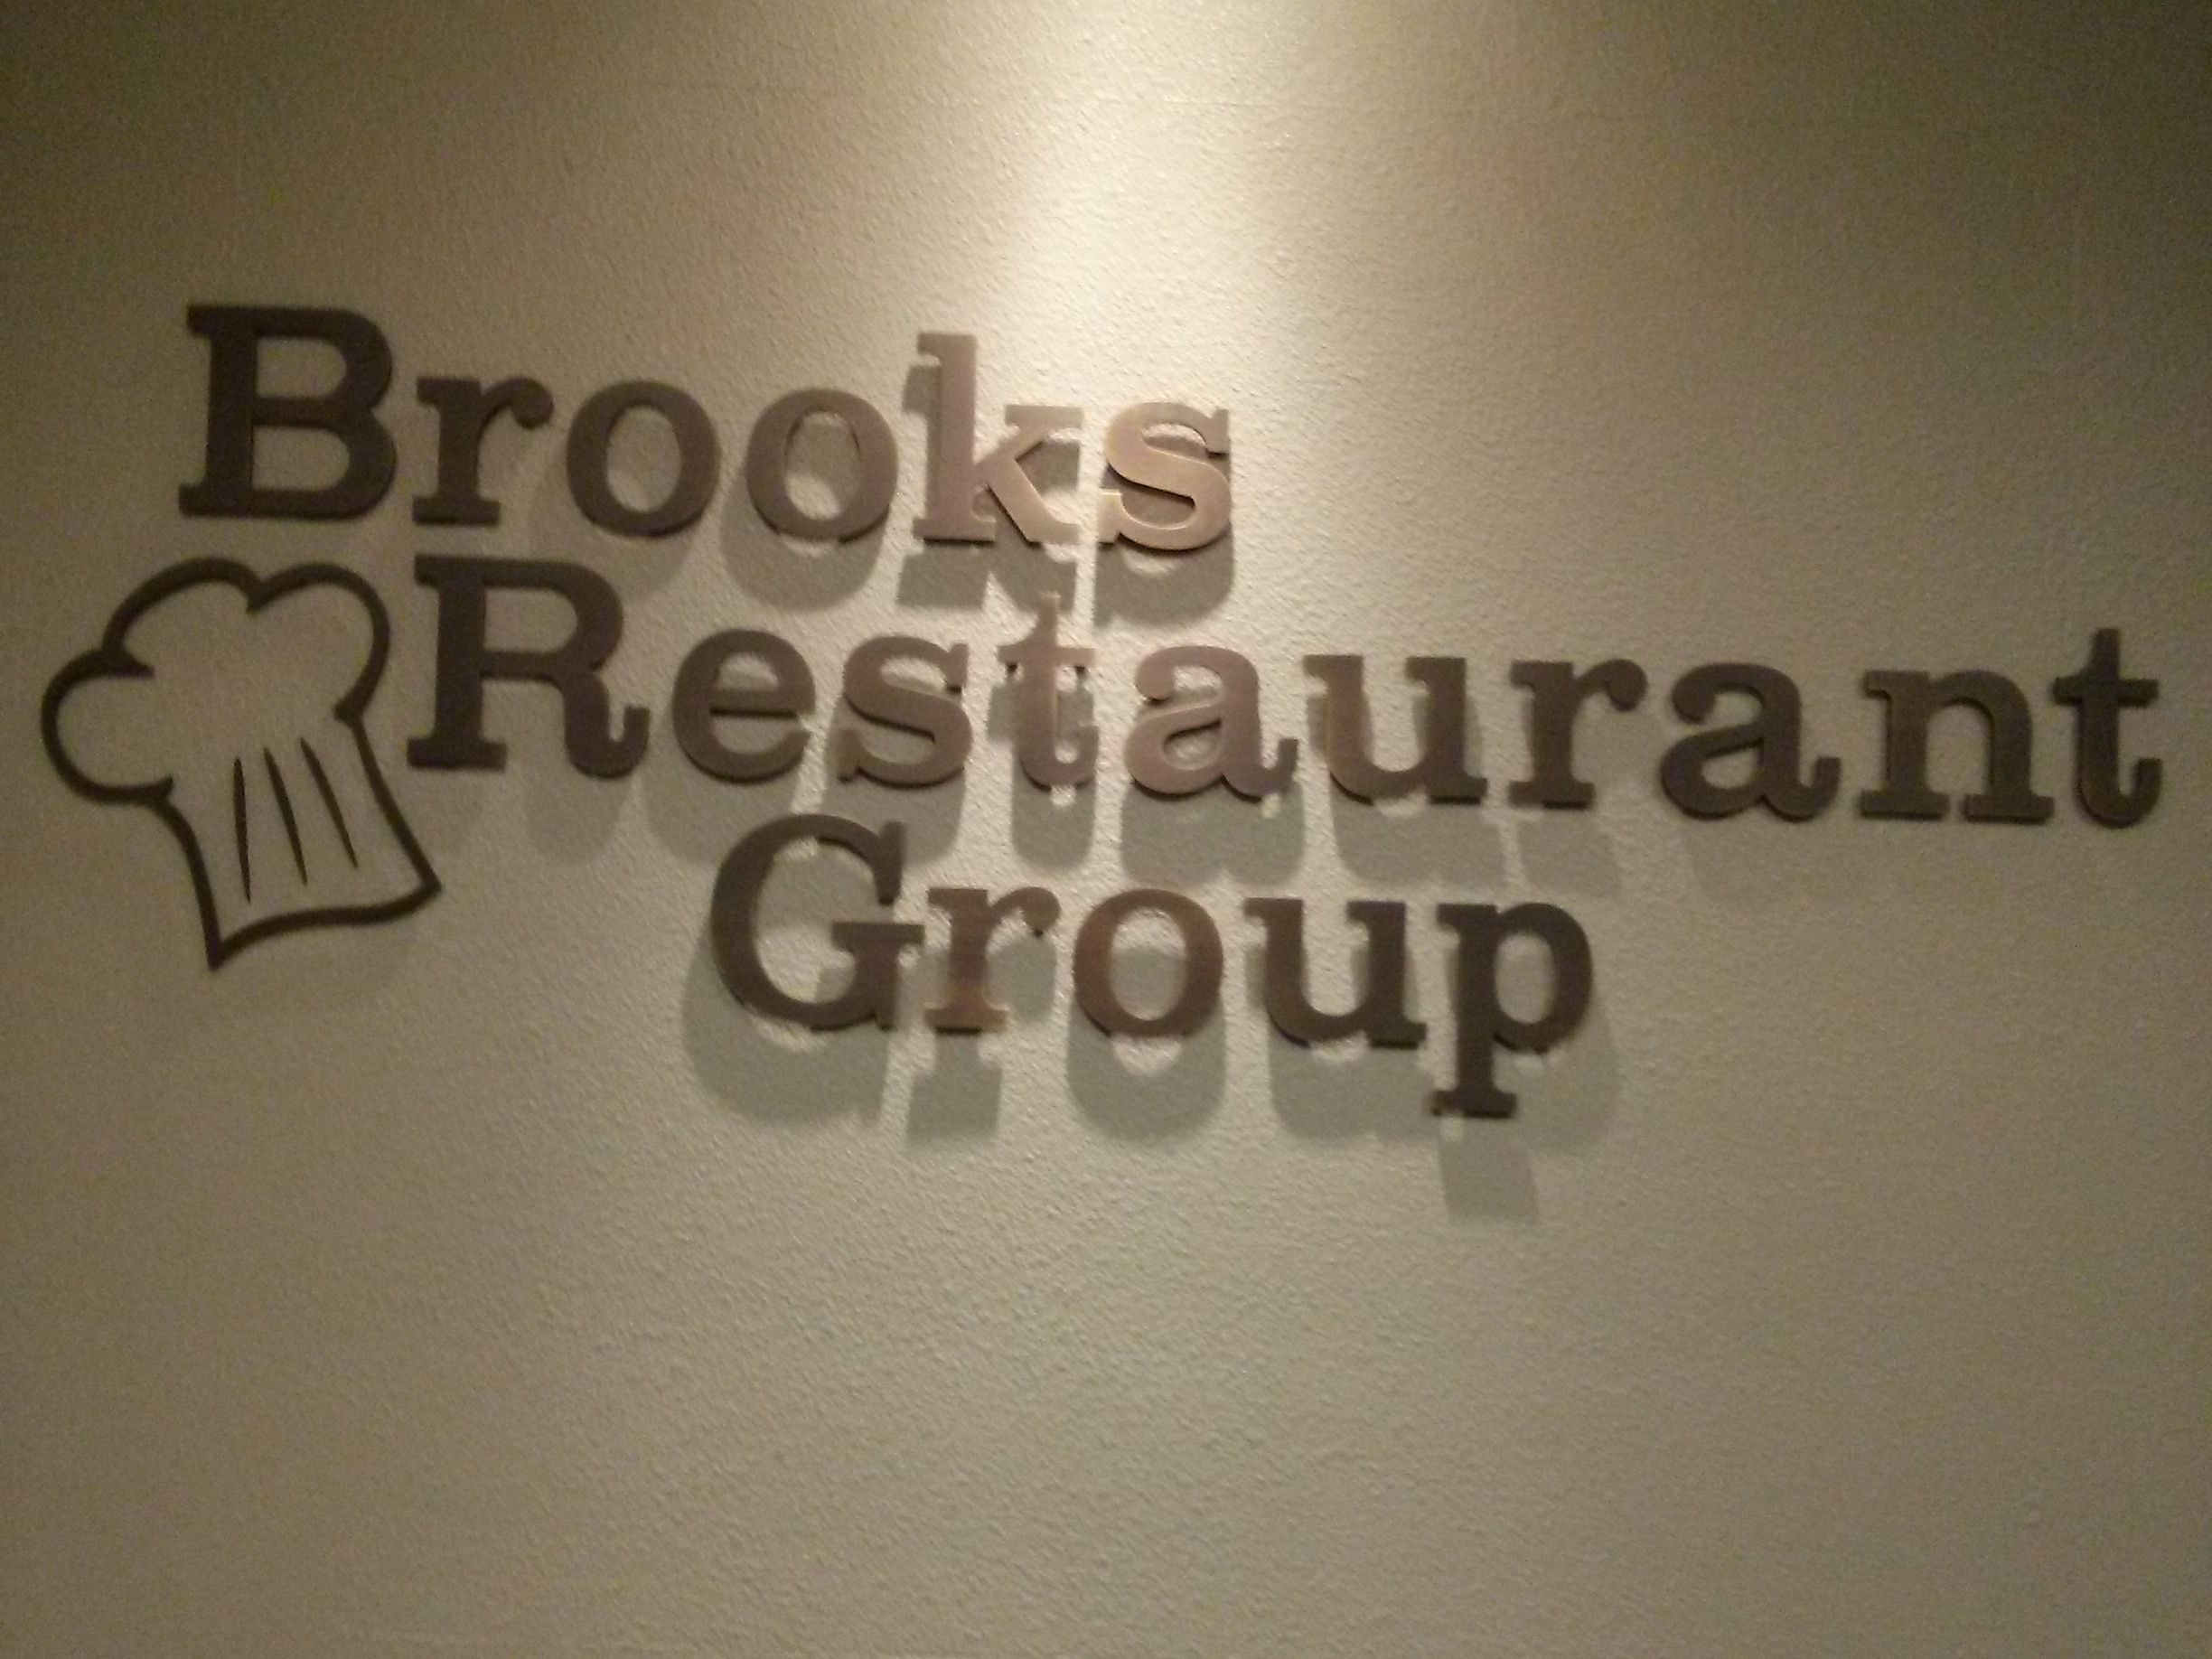 Brooks Restaurant Group